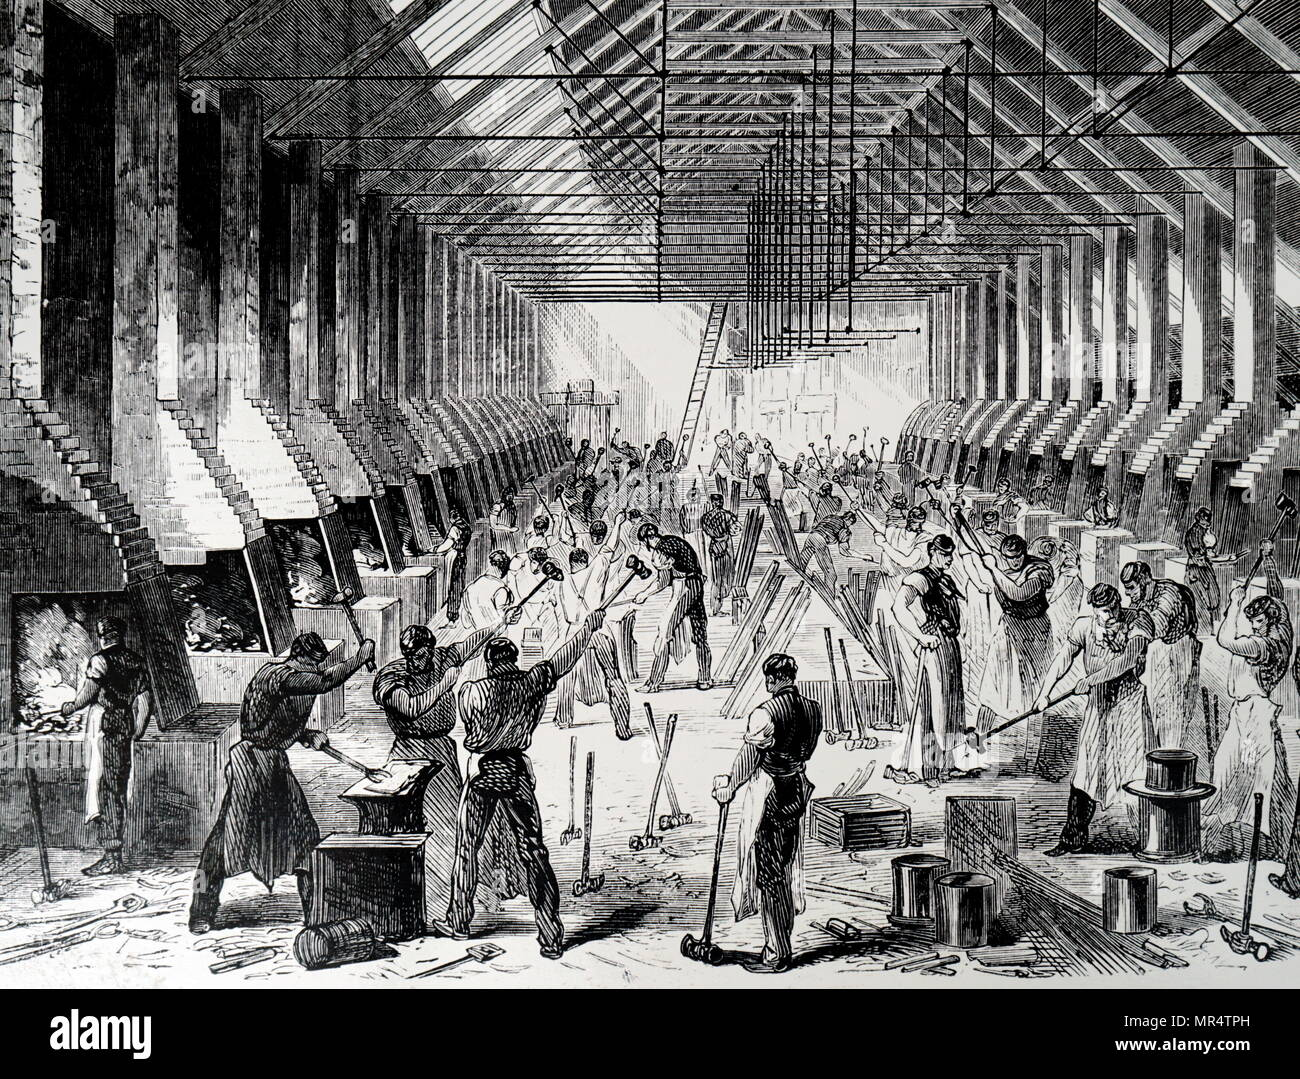 Engraving depicting the Railway Carriage Company's works in Oldbury. Dated 19th century - Stock Image